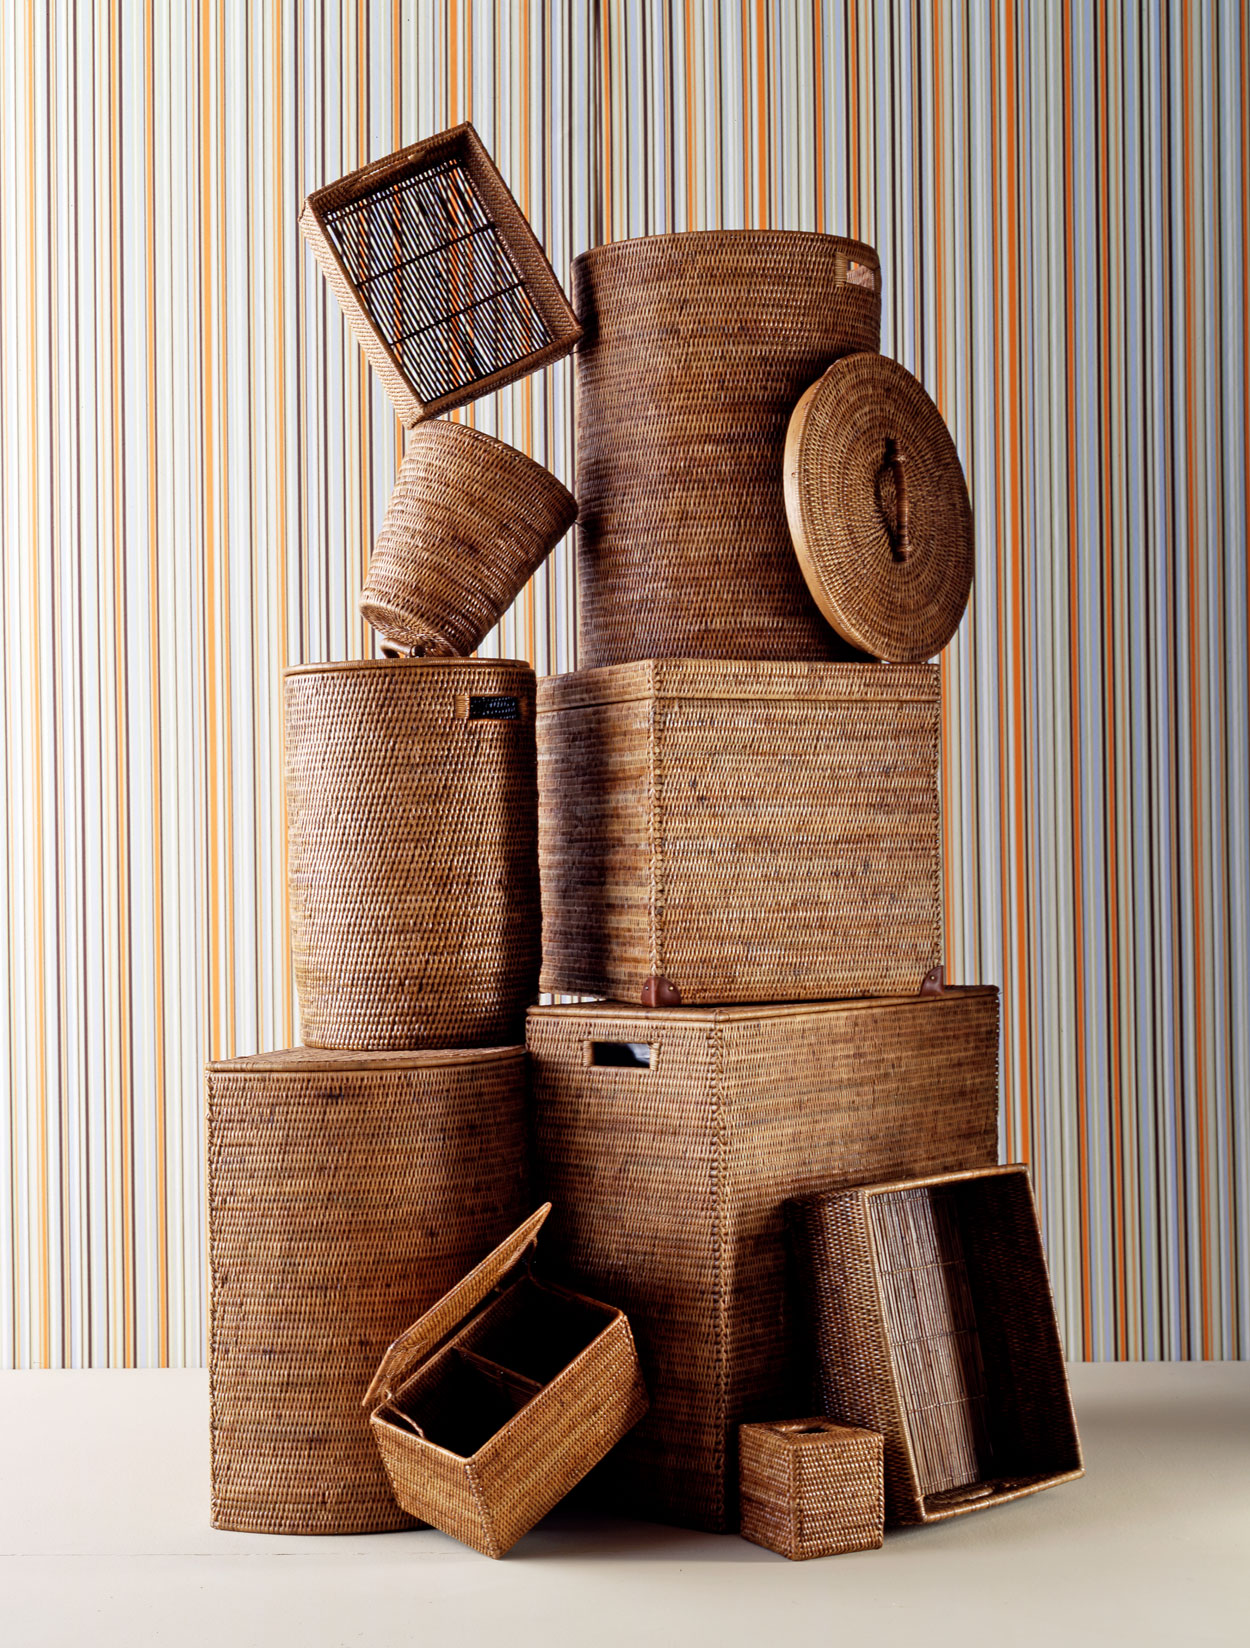 Los Angeles Still Life Photographer - Stack of Baskets  by Ray Kachatorian